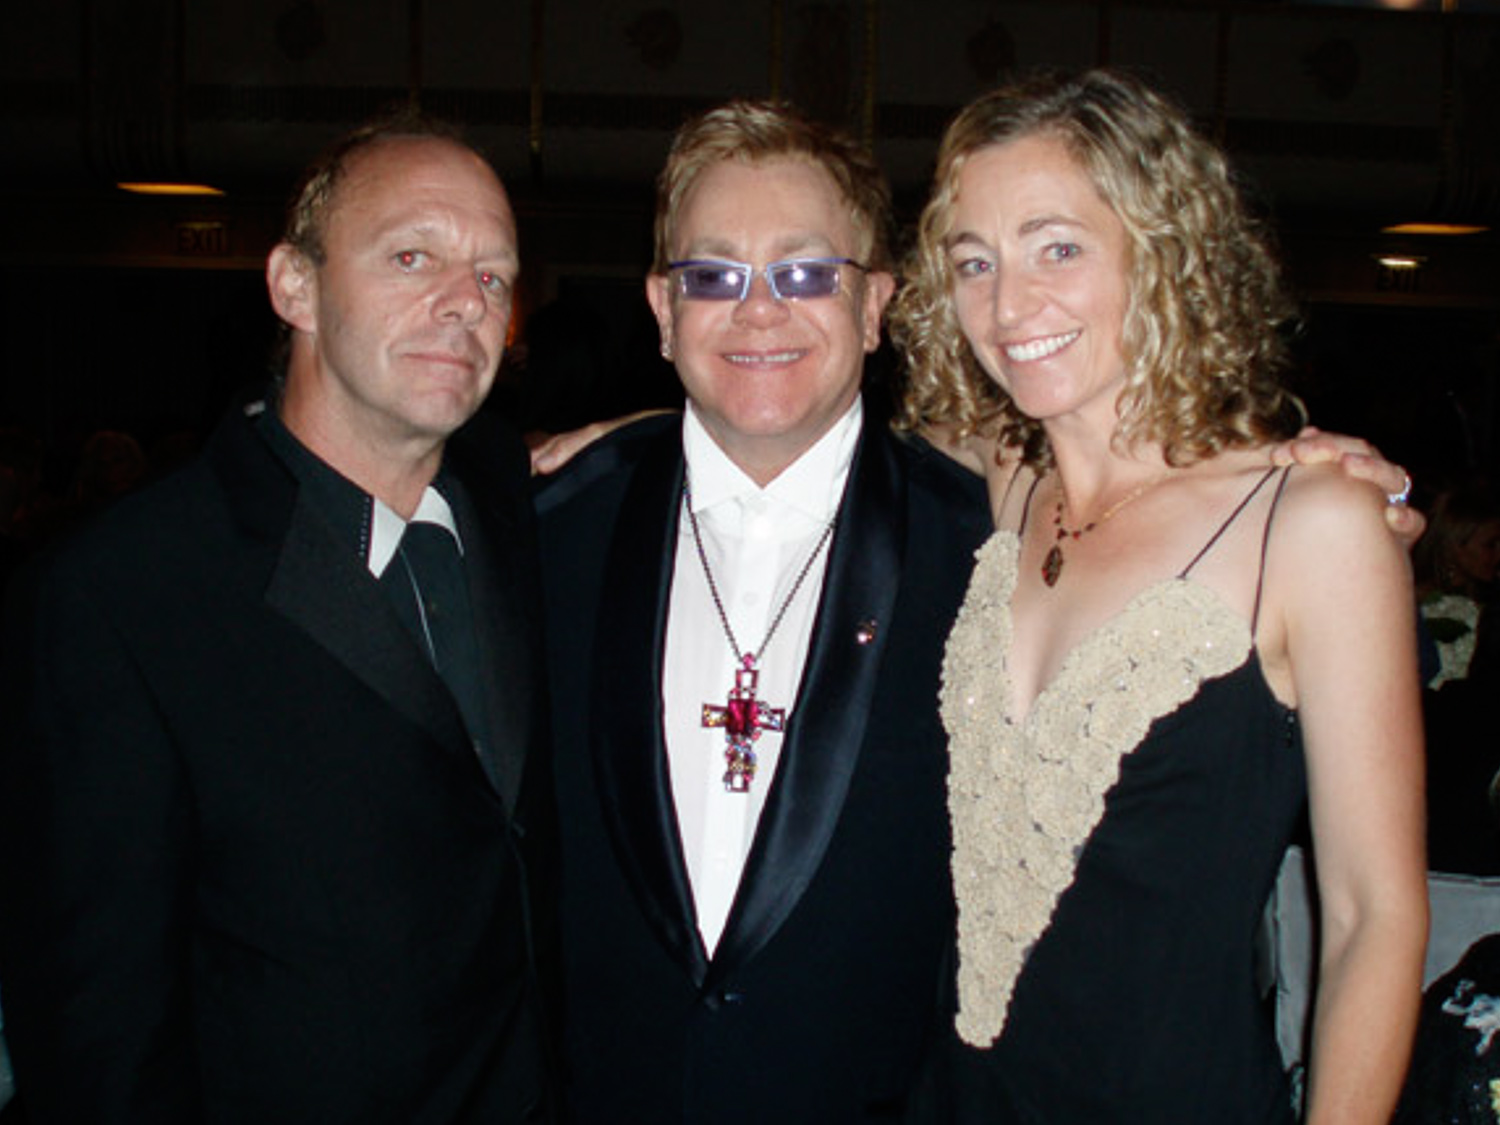 Steven and Sharon with Sir Elton John